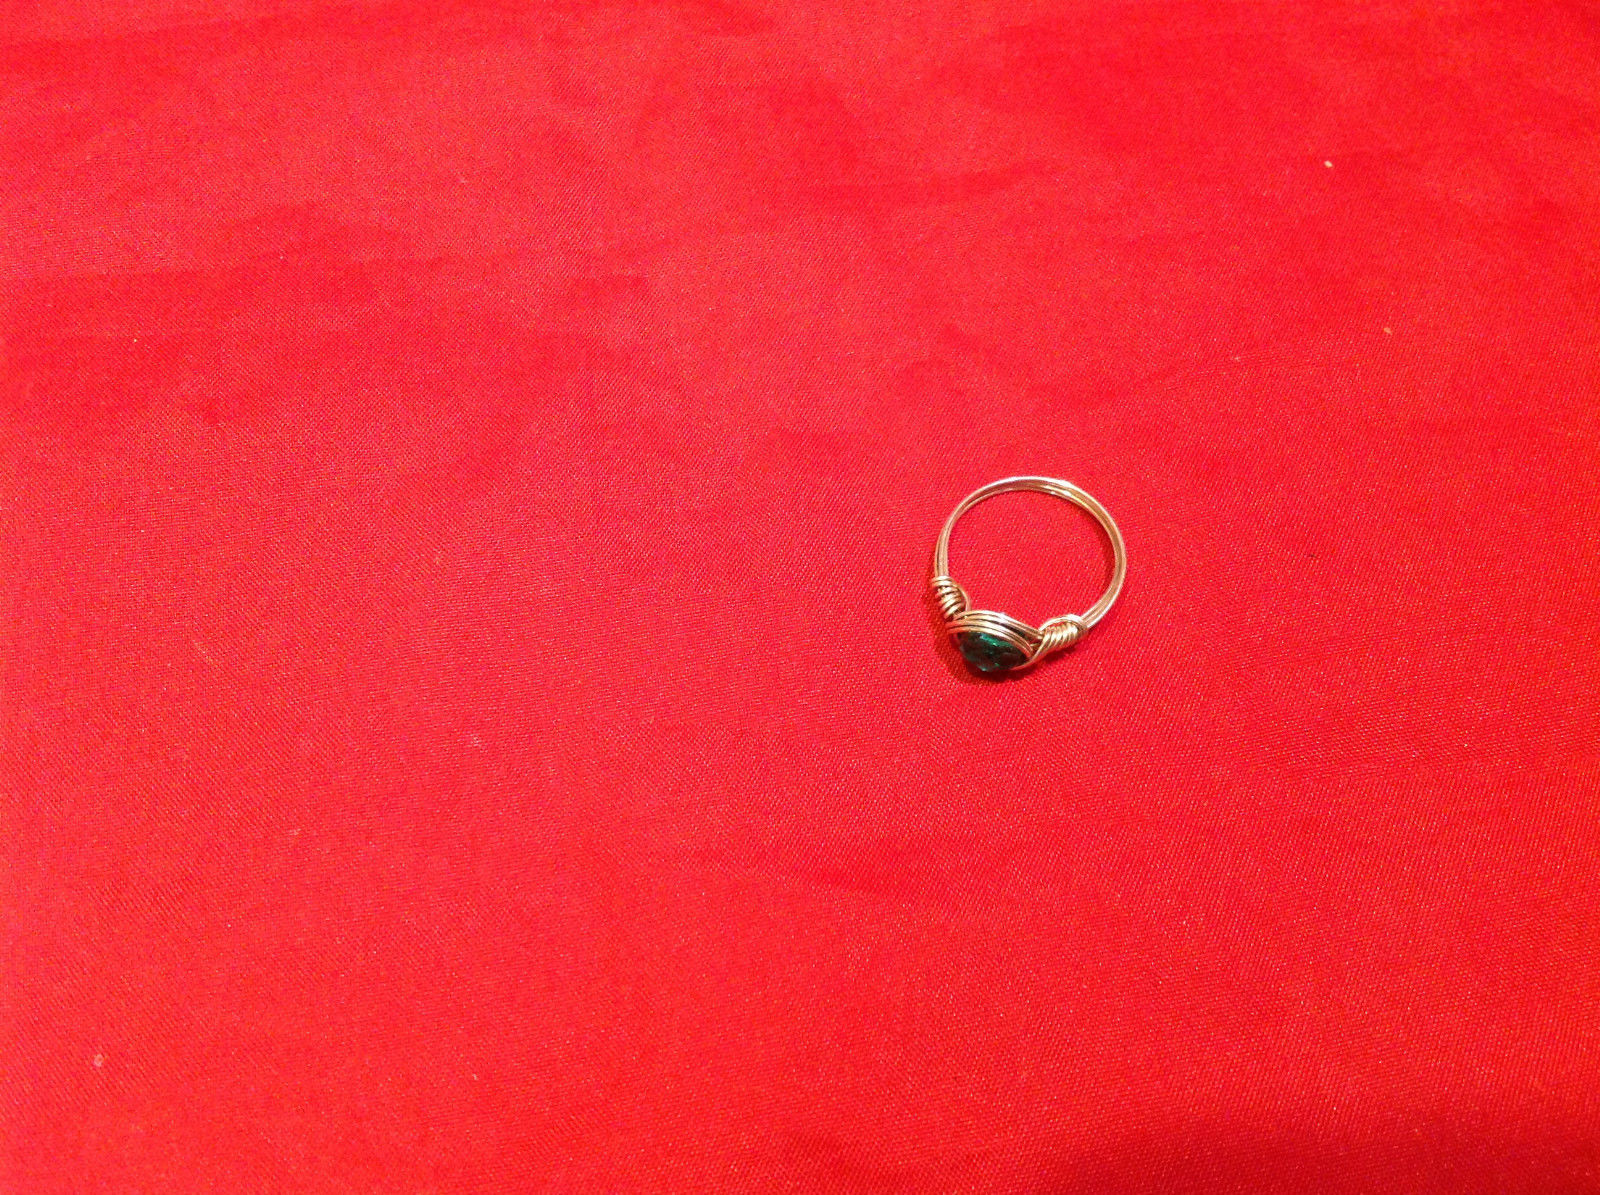 Homemade 6 and 1/4 Ring Wrap germanium to prevent tarnish Teal Torquoise Silver